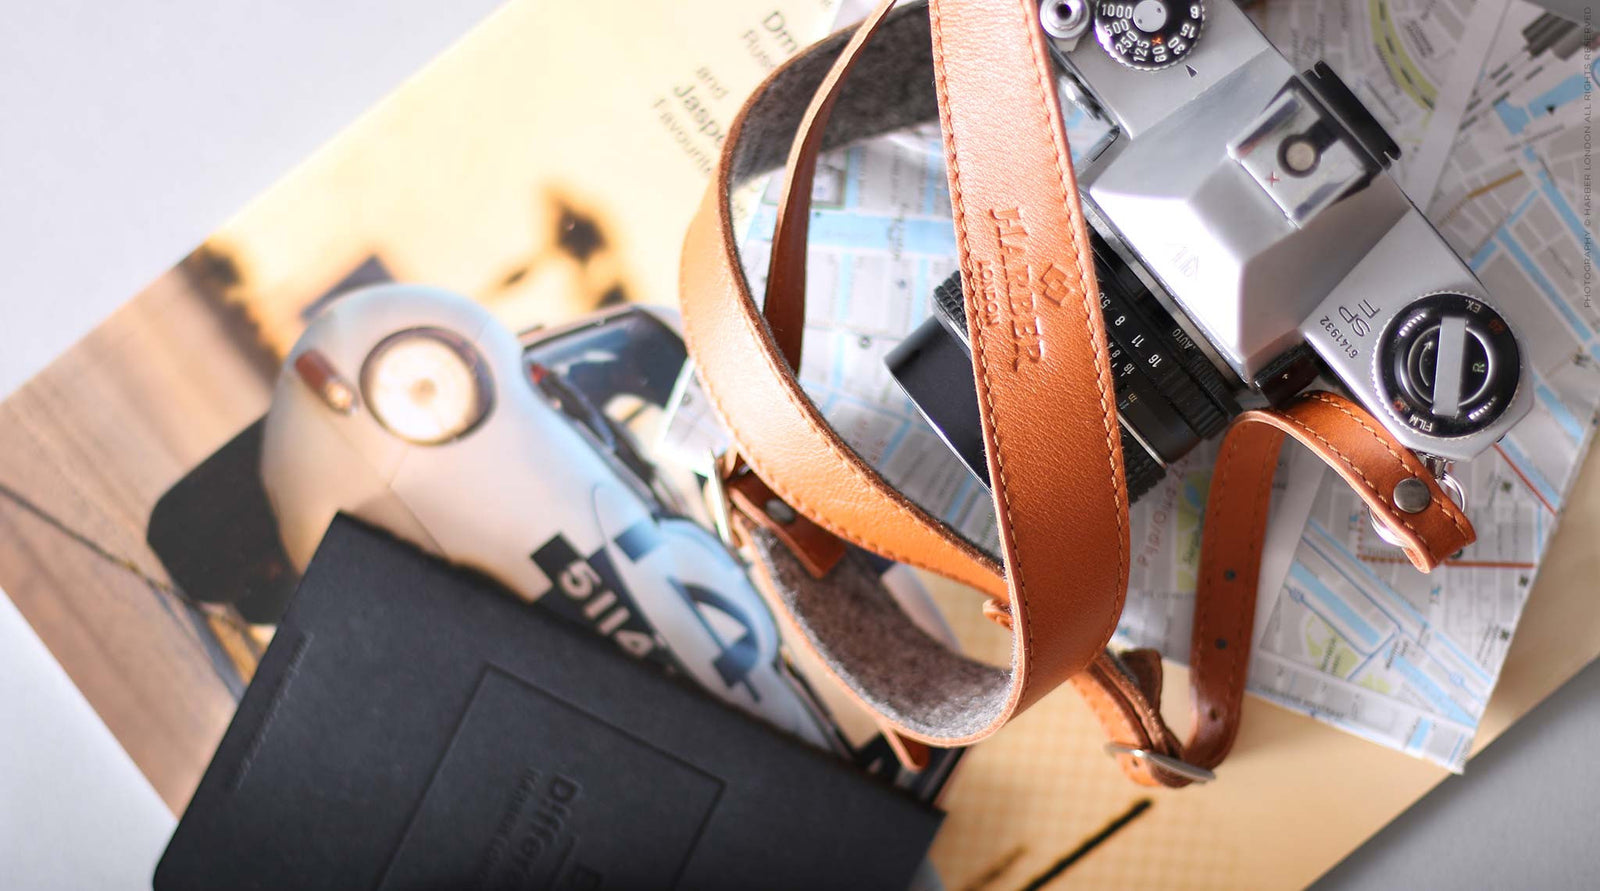 Adjustable Leather & Felt Camera Strap for DSLR Cameras, Nikon, Leica, Pentax, SLR. Harber London. Minimalist DSLR Strap